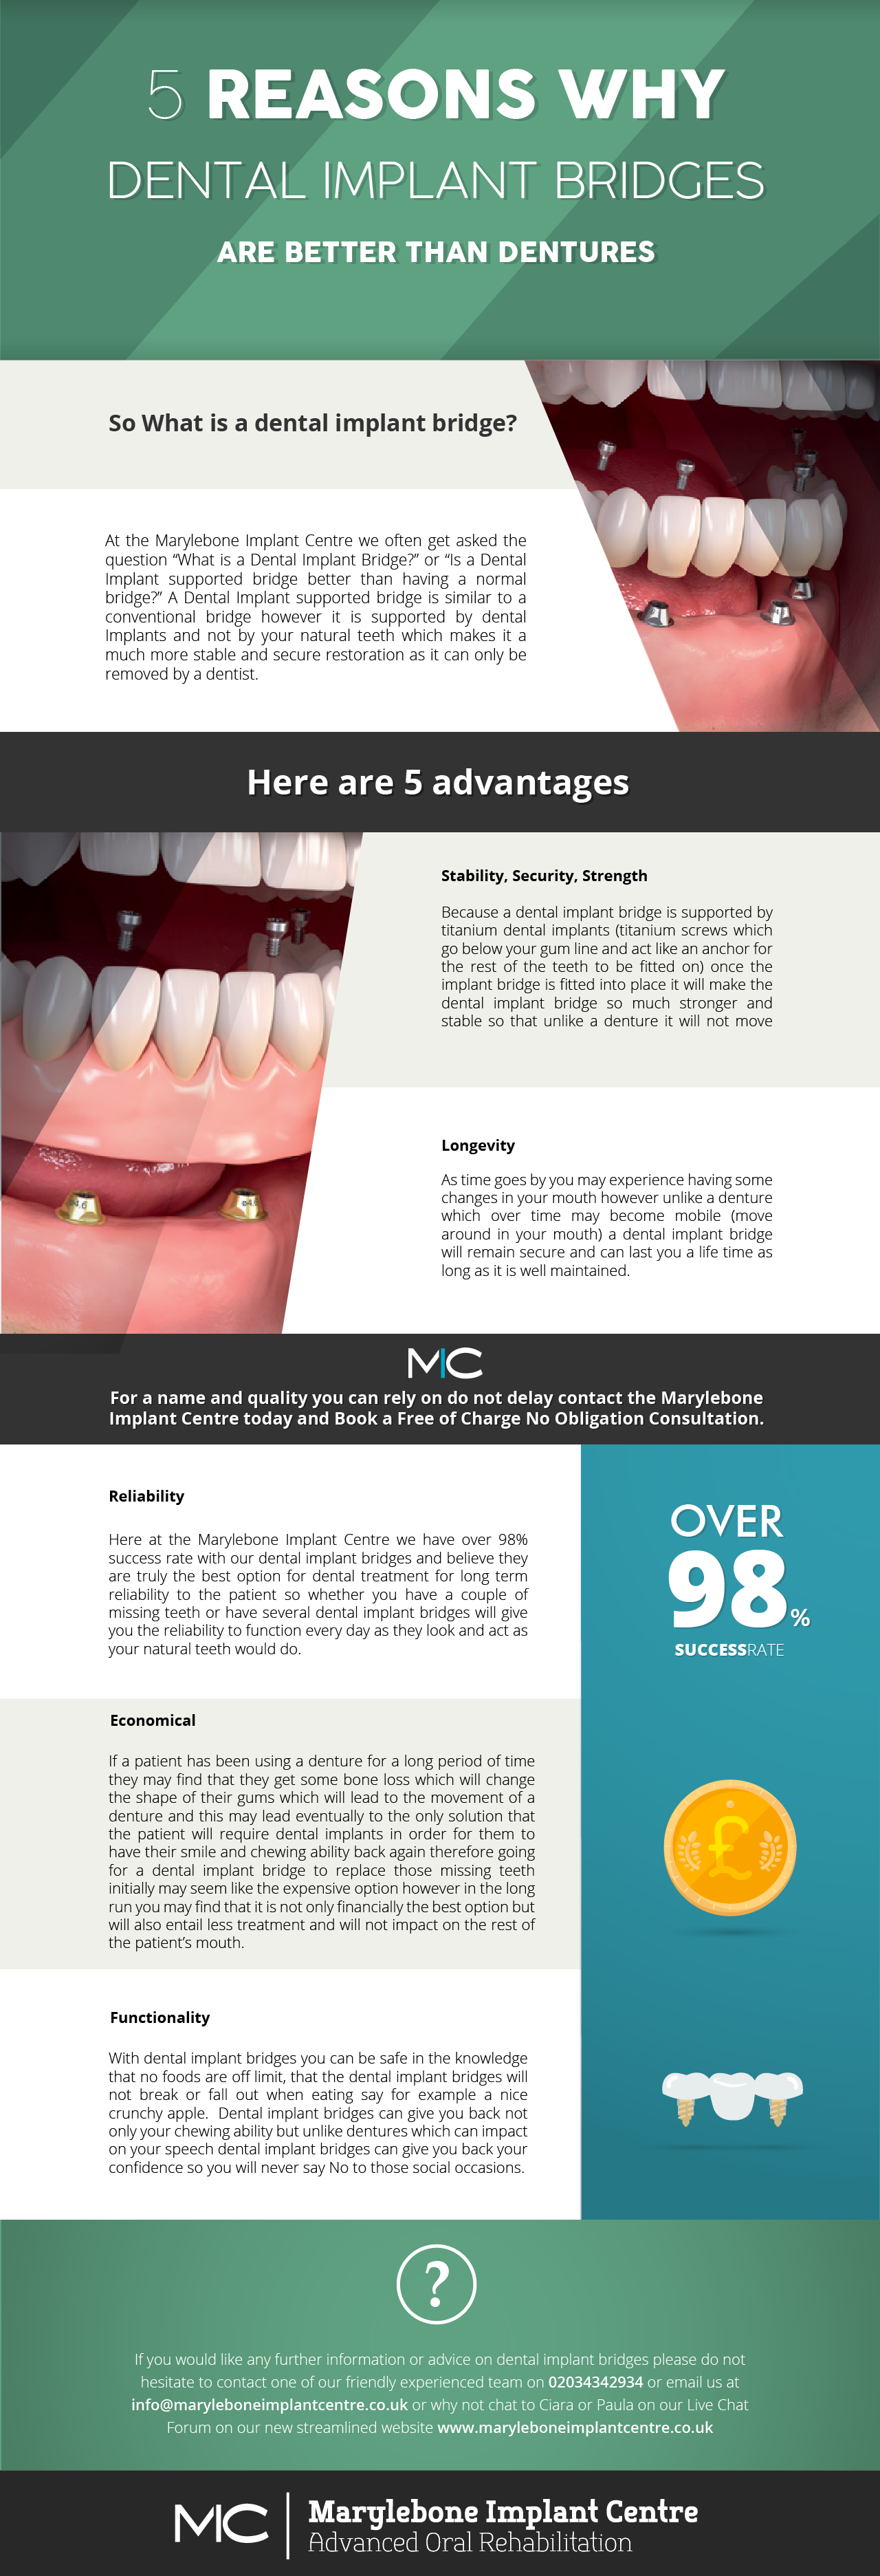 - 5 Reasons Why Dental Implant Bridges Are Better Than Dentures